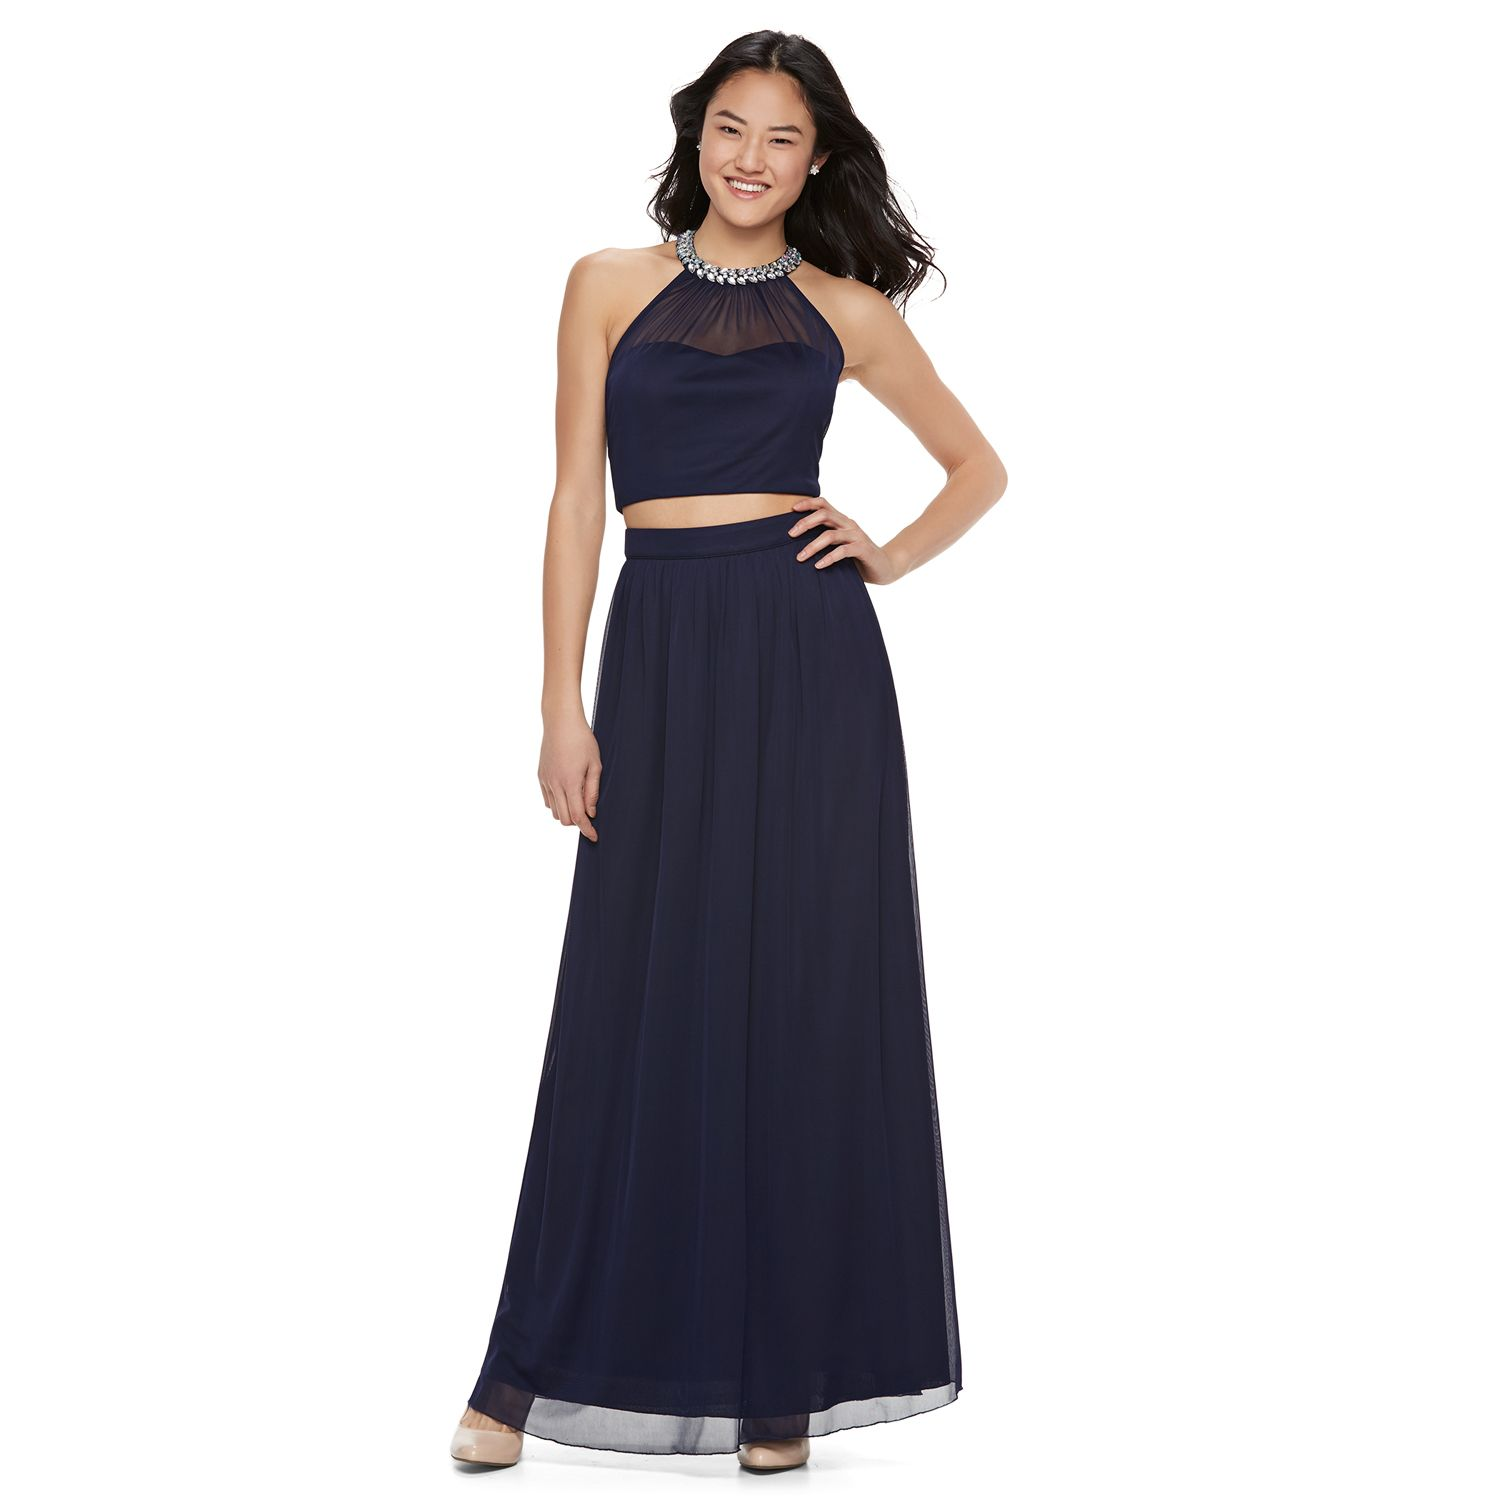 X back prom dresses on clearance